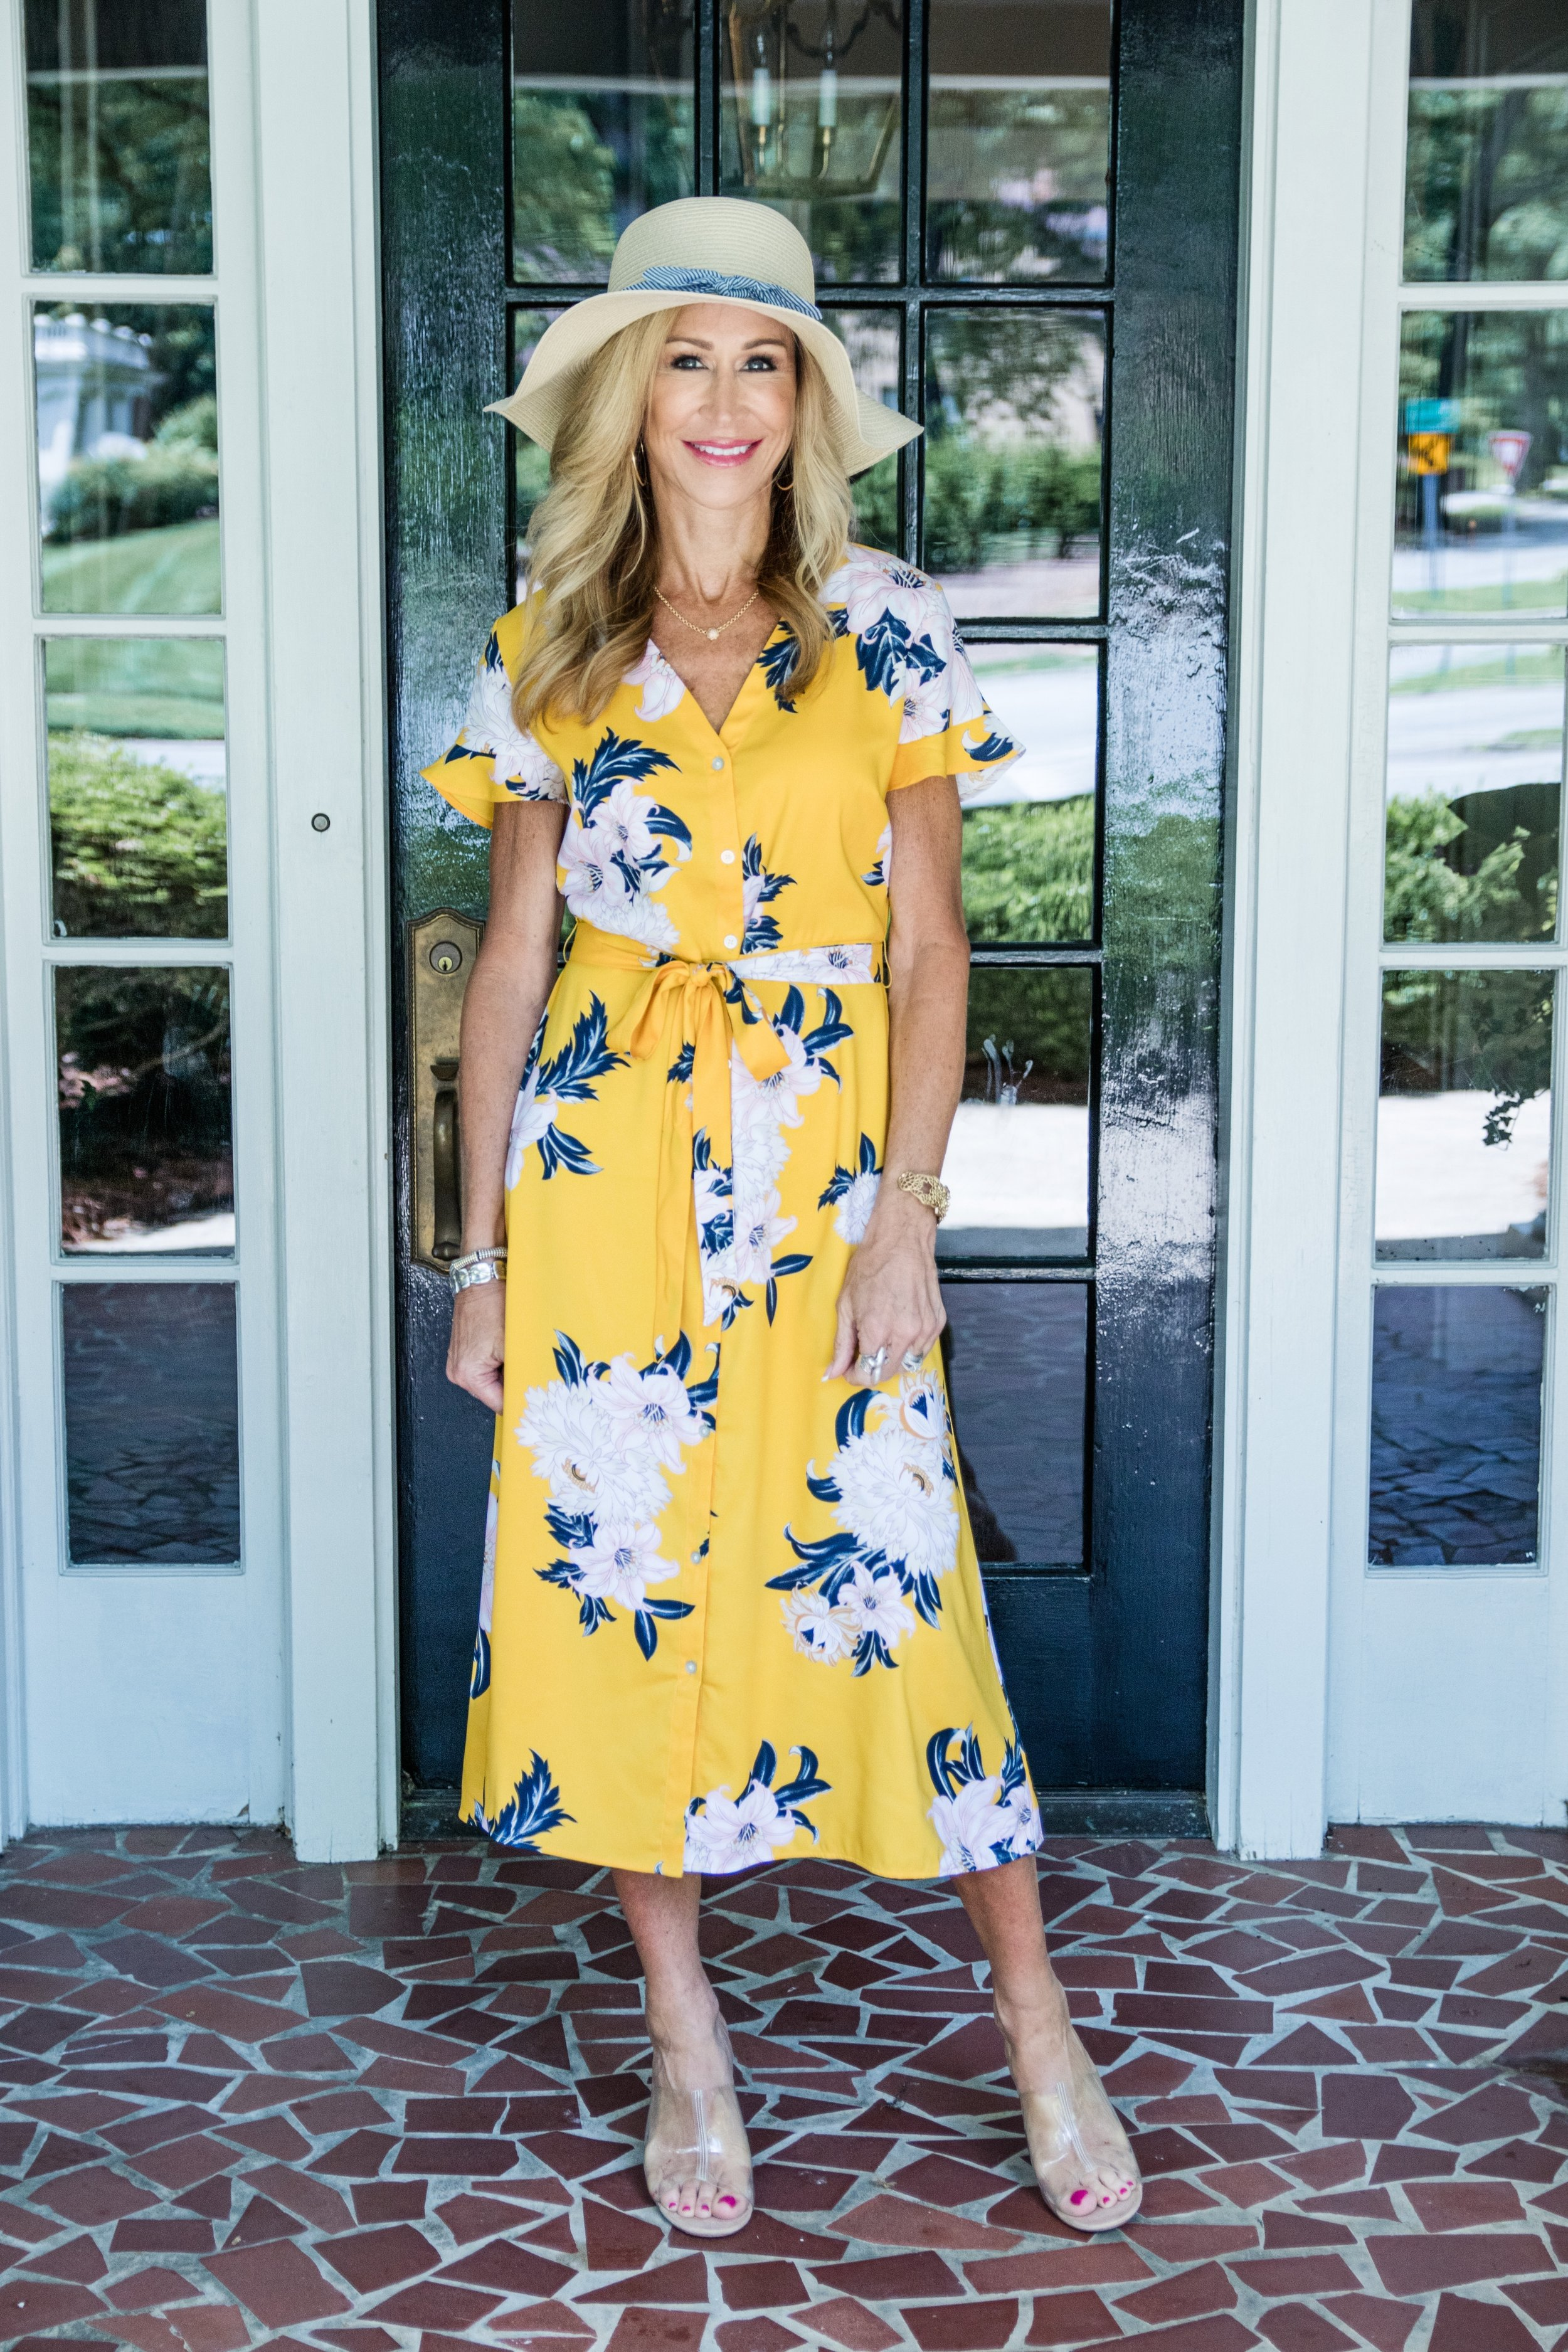 Spring Floral Dress - Loft dress and hat with Zara shoes - Crazy Blonde Life